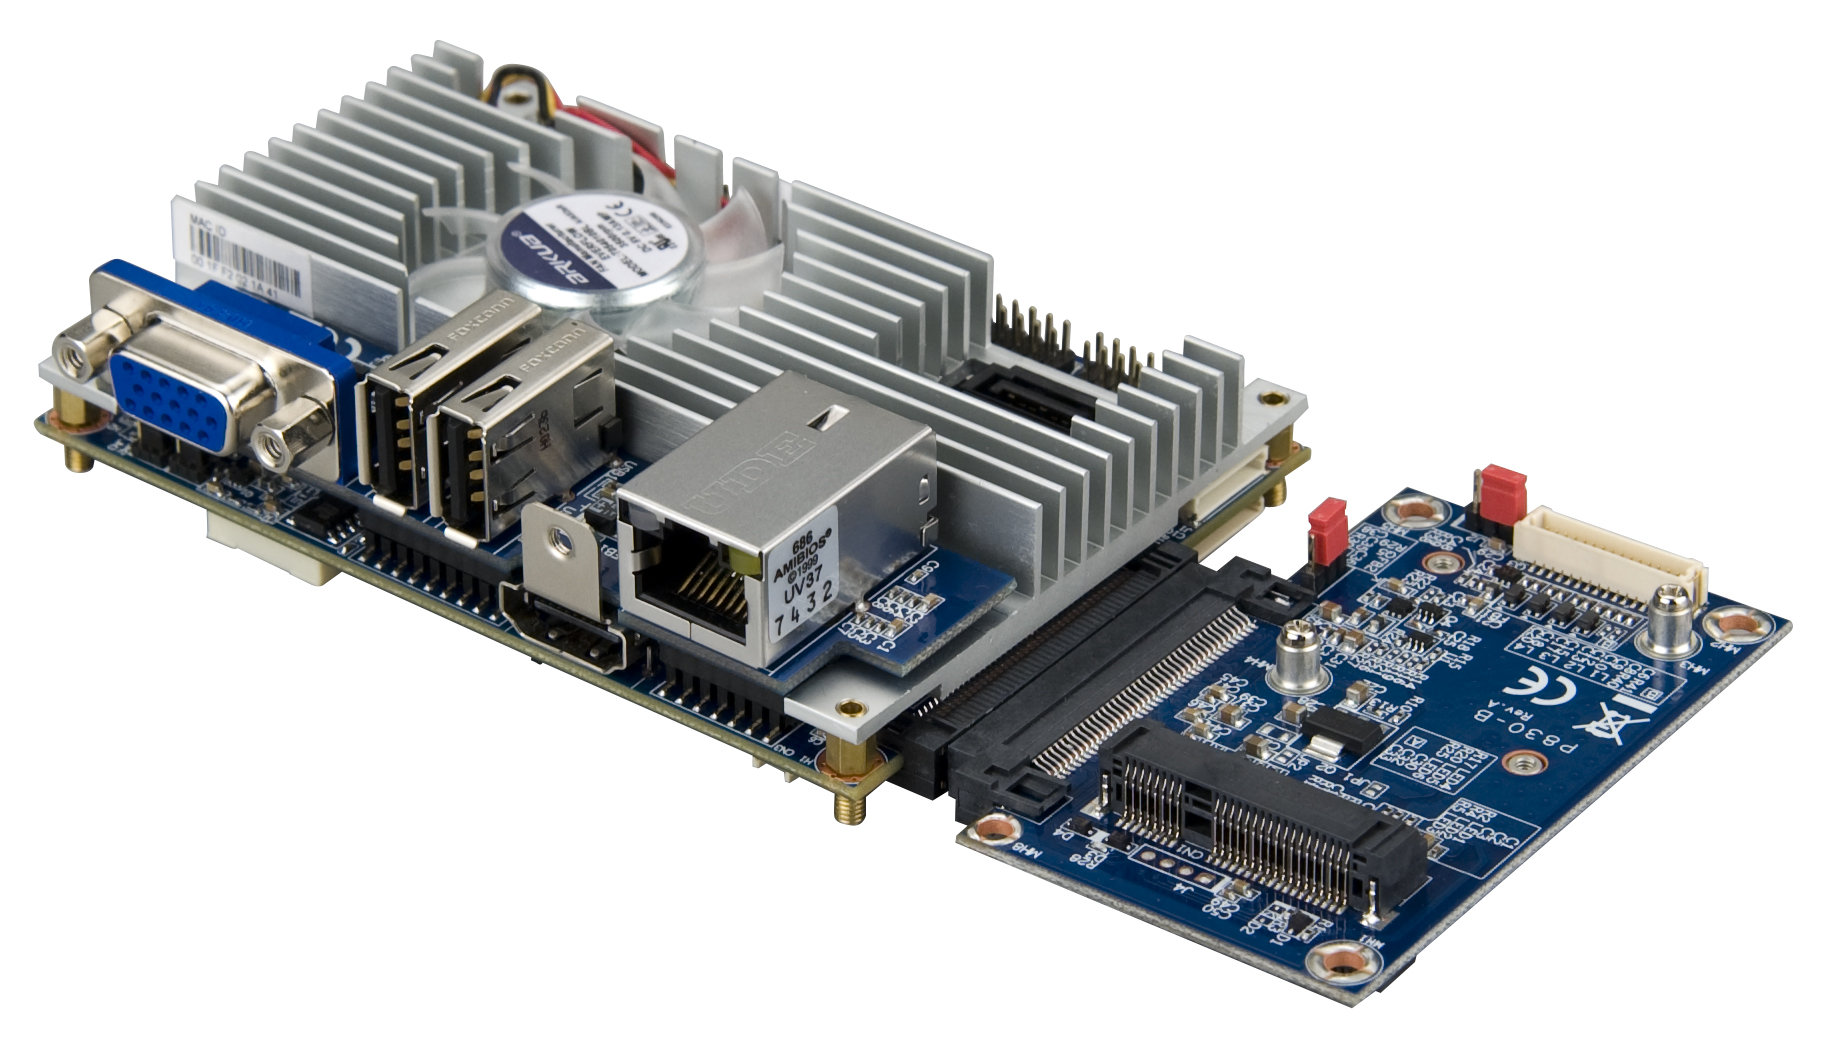 VIA EPIA-P830 mit P830-A und optionalem Expansion Board